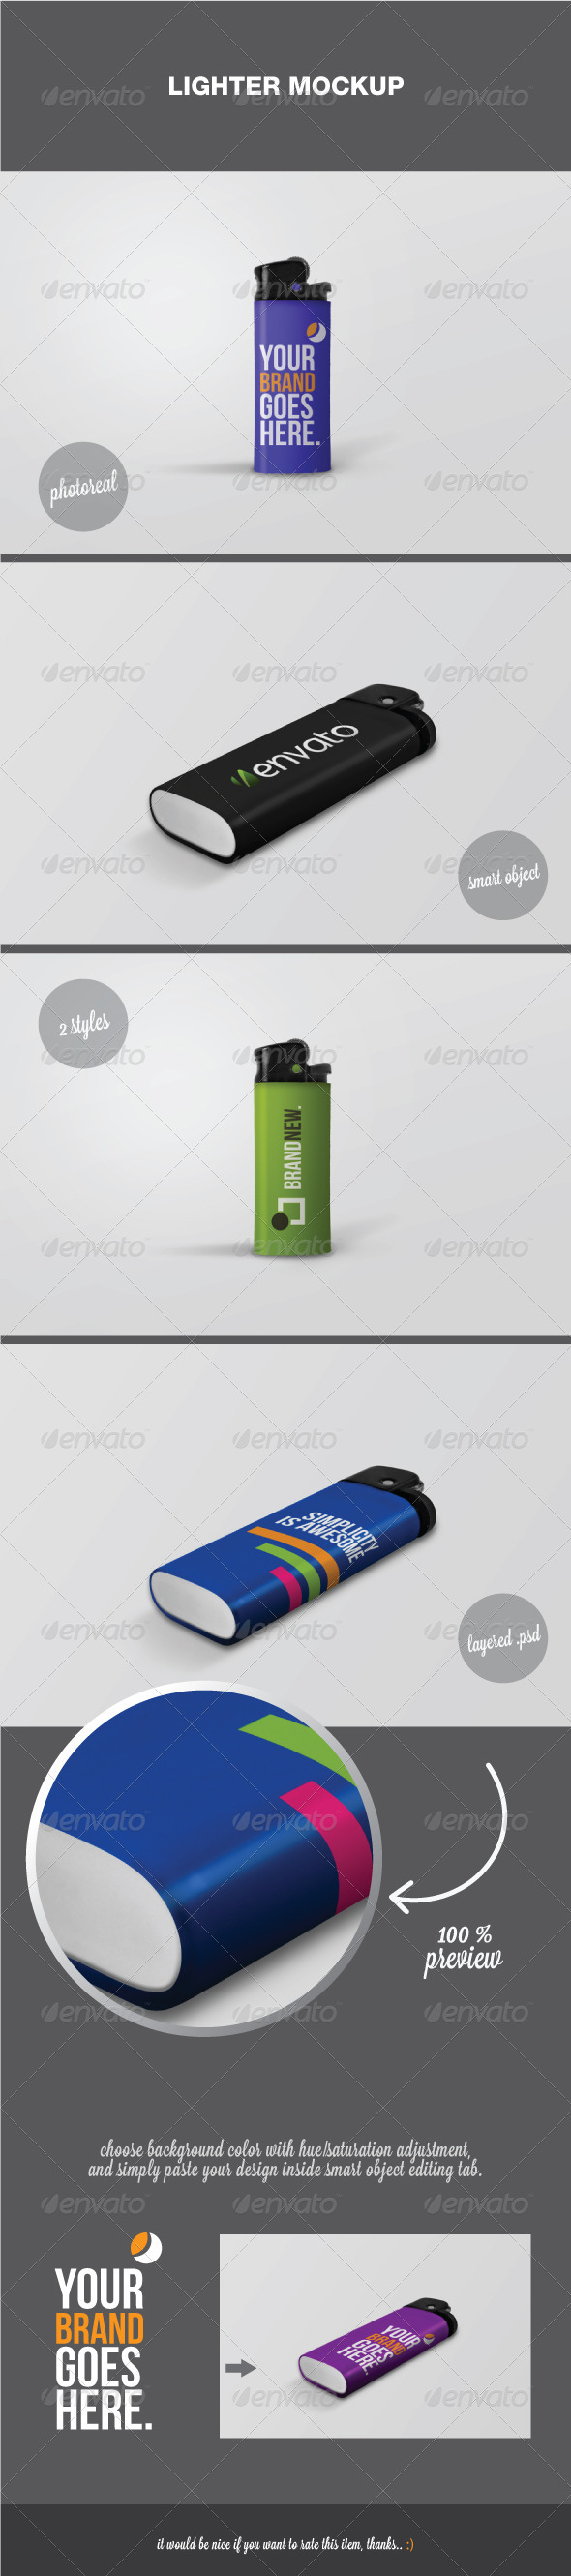 Lighter Mockup - Miscellaneous Product Mock-Ups